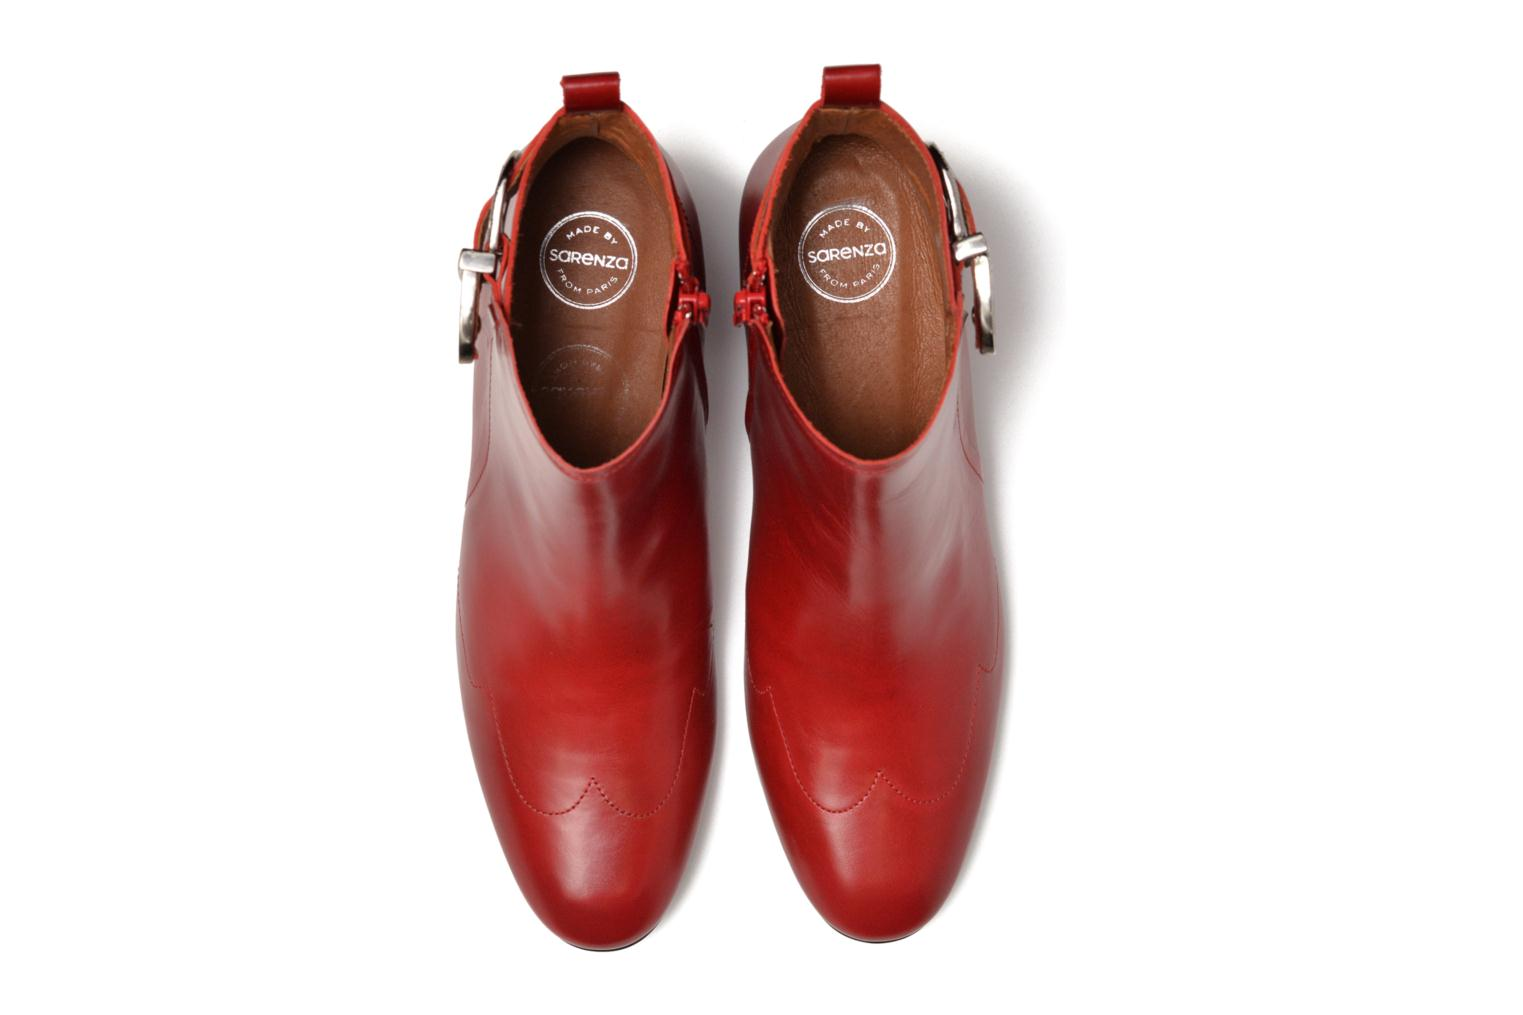 90's Girls Gang Boots #6 Rodepe rouge